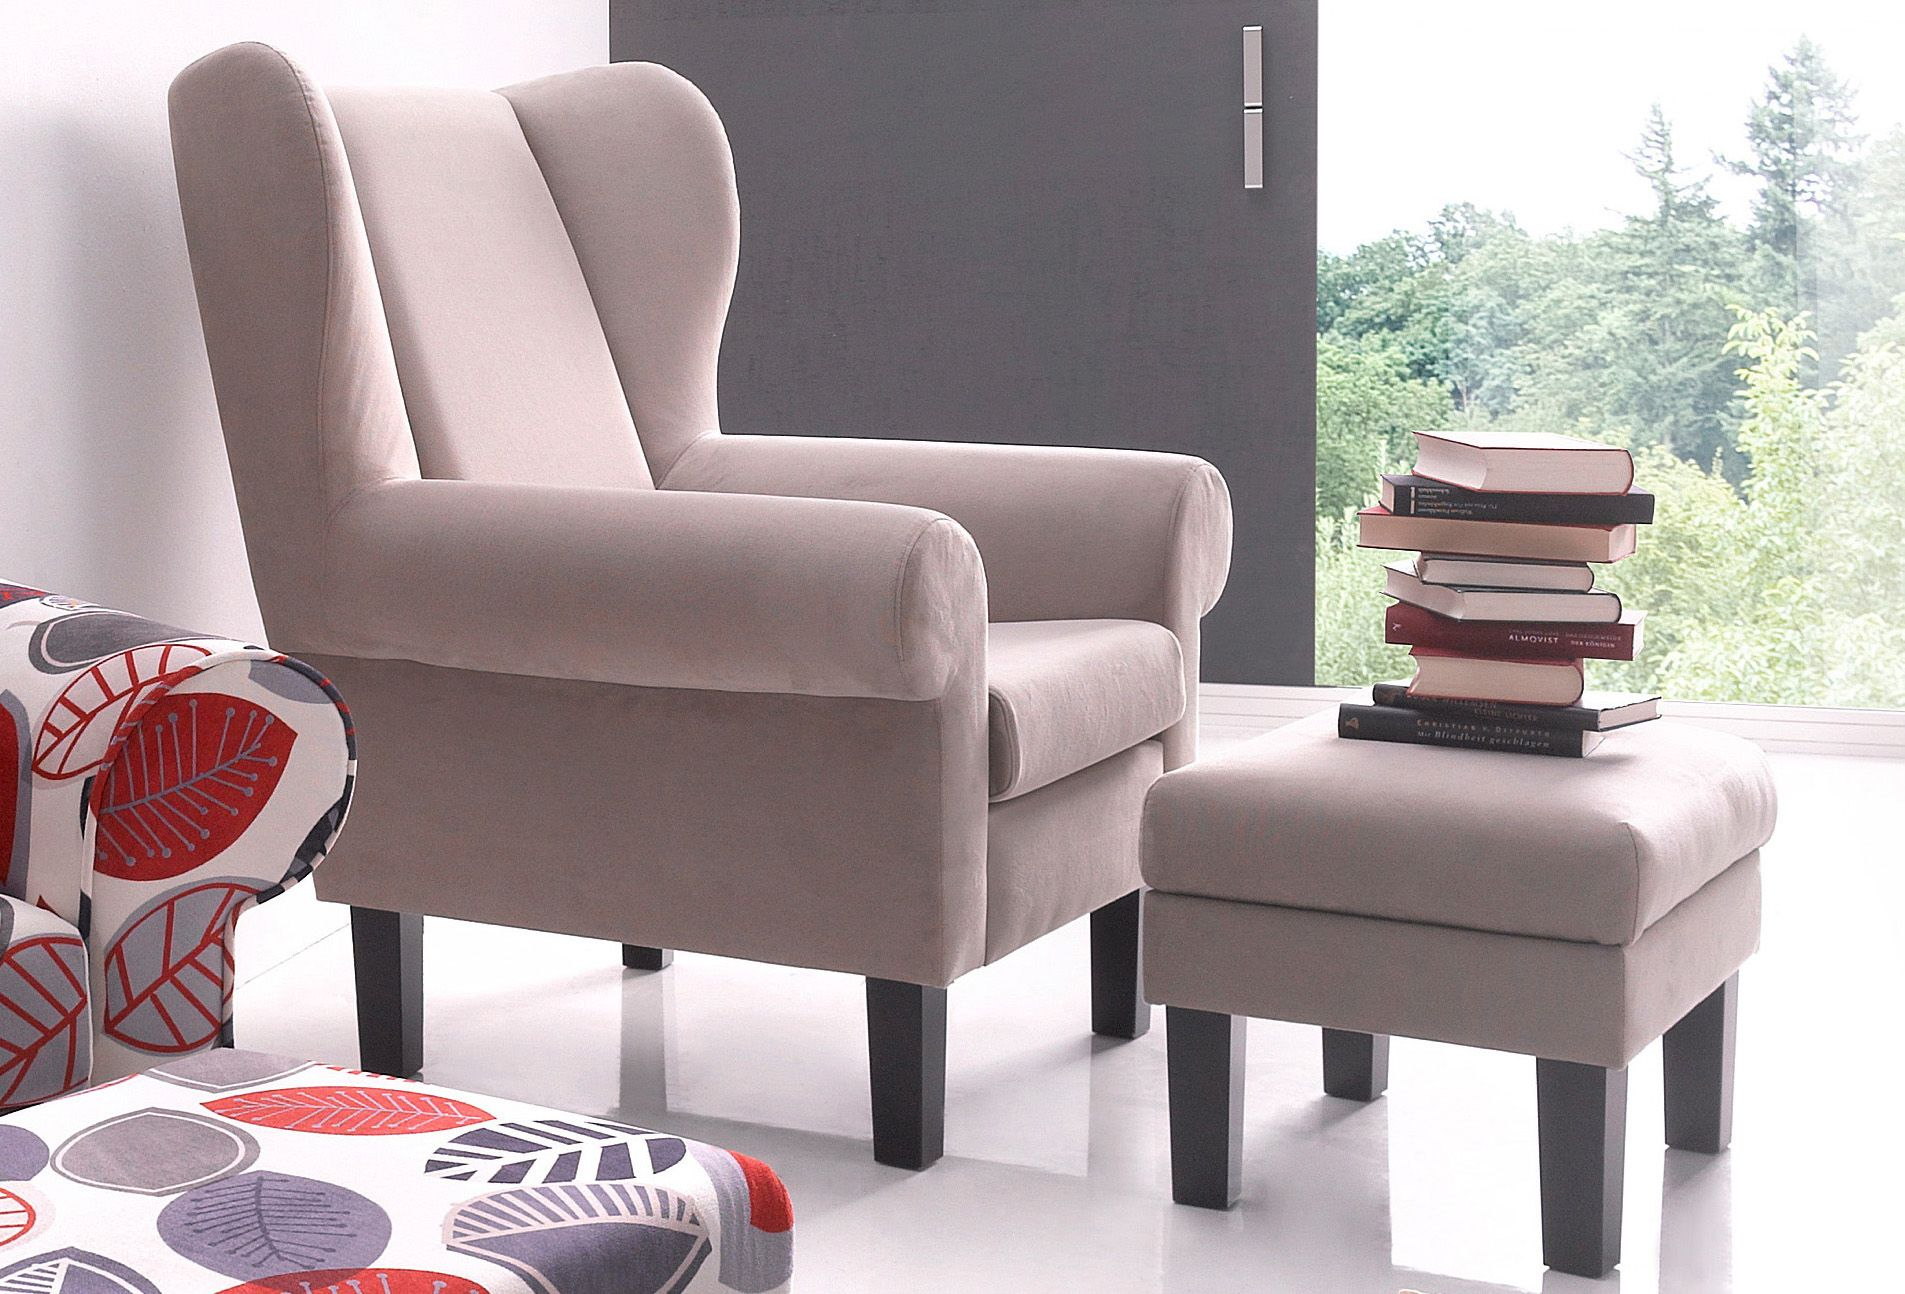 ATLANTIC HOME COLLECTION Ohrensessel, Atlantic Home Collection, mit Hocker